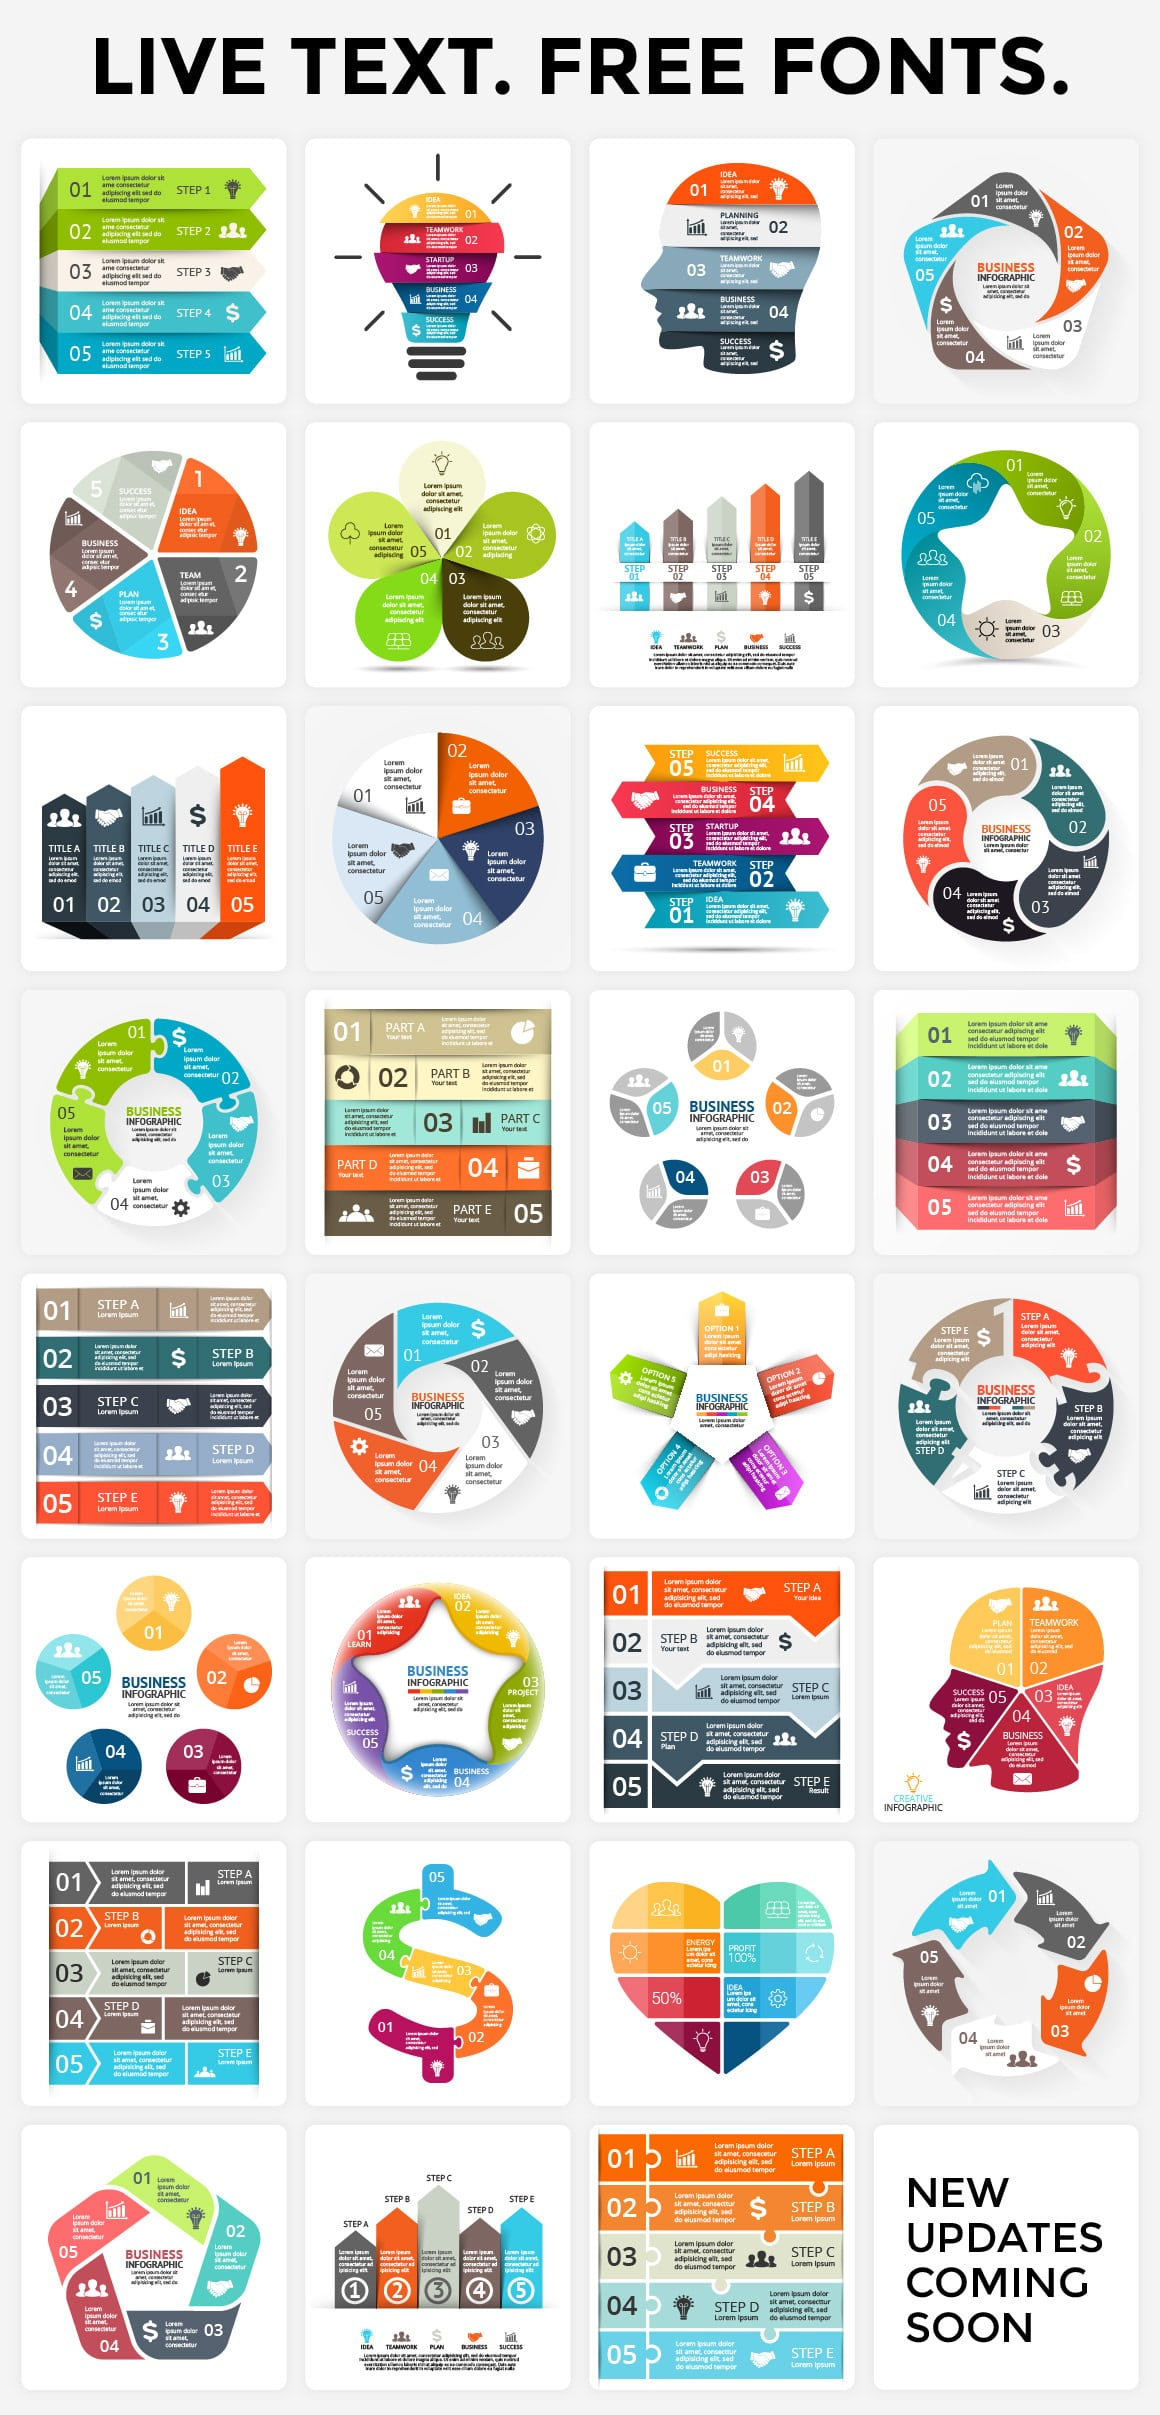 Live design and. interactivity makes infographics an indispensable addition to modern presentations.